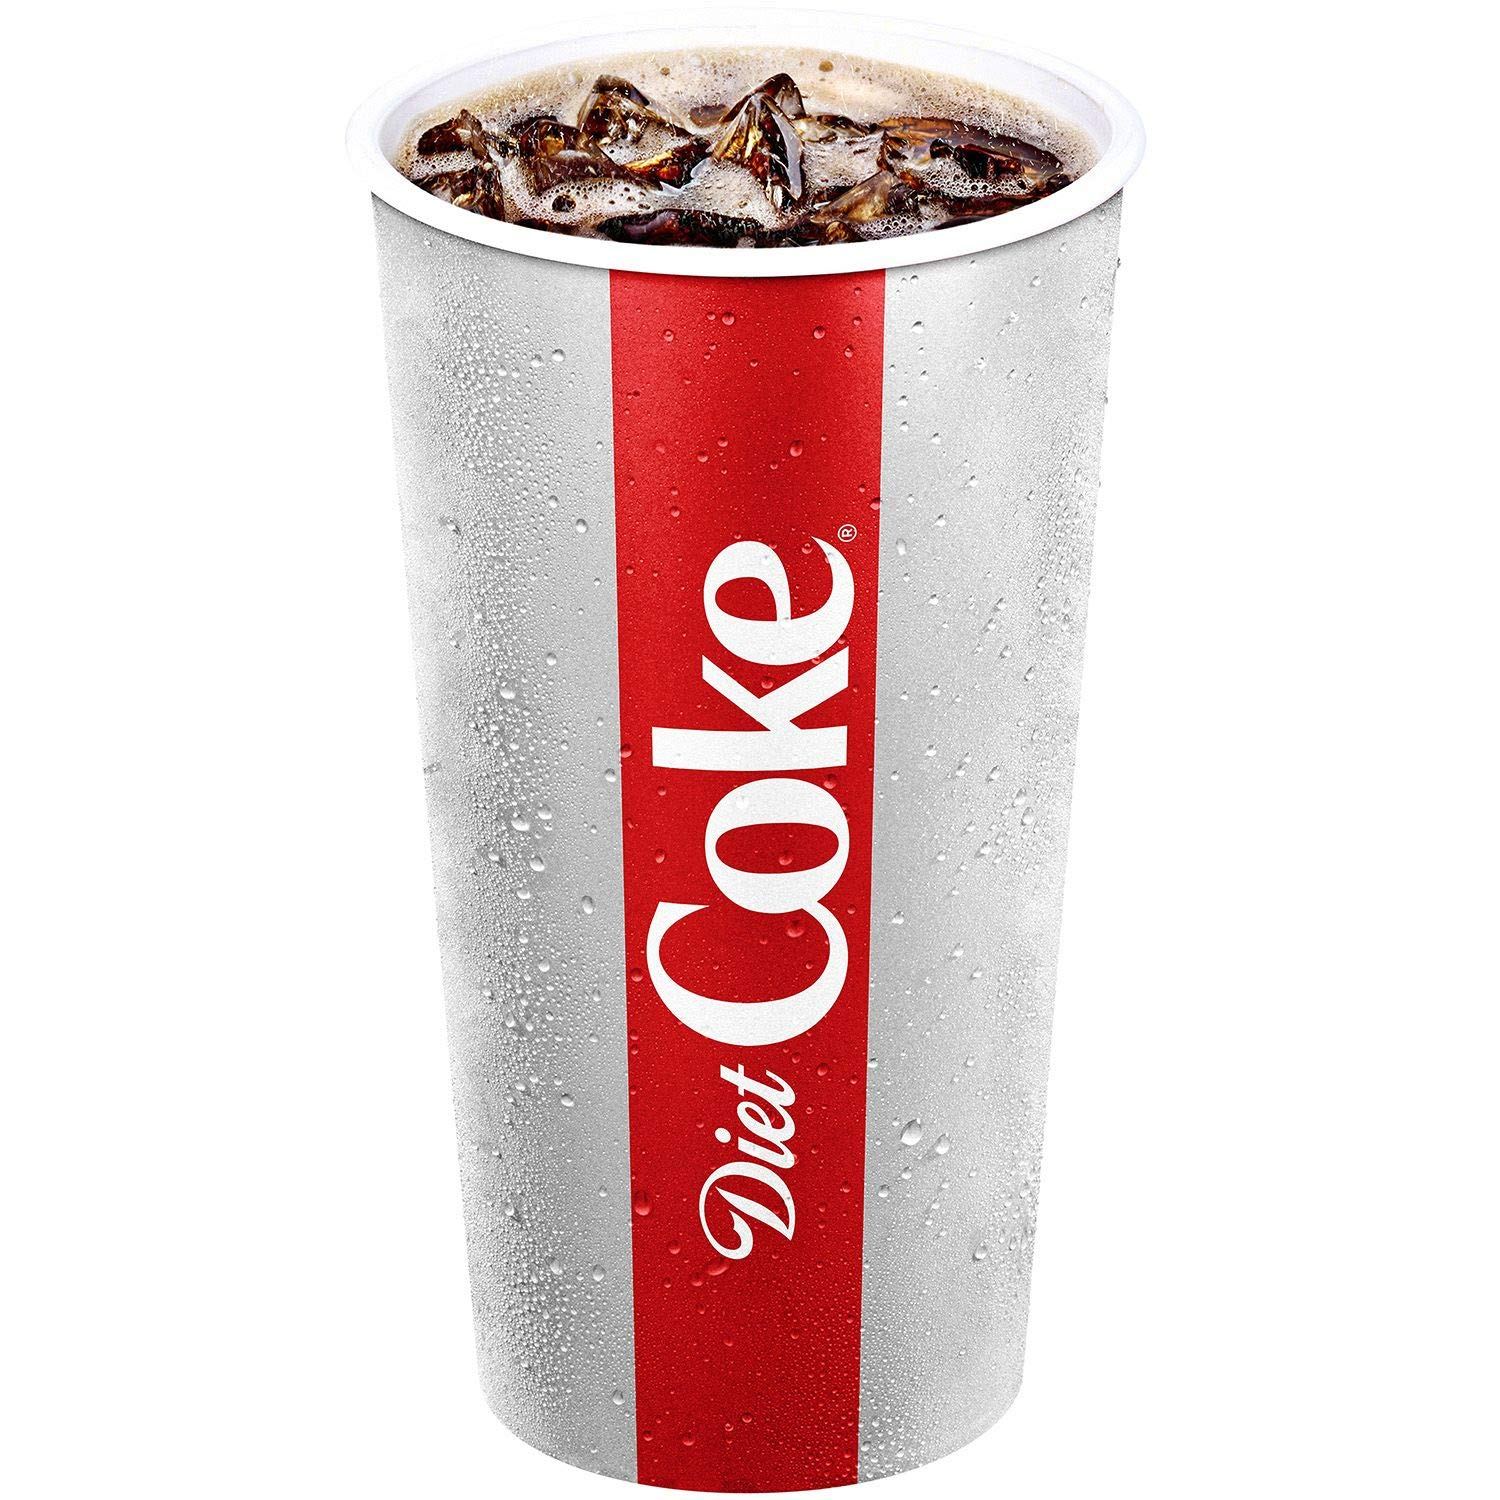 Diet Coke Bag-In Box Fountain Syrup 5 gal. (pack of 3) A1 by Store-383 (Image #2)